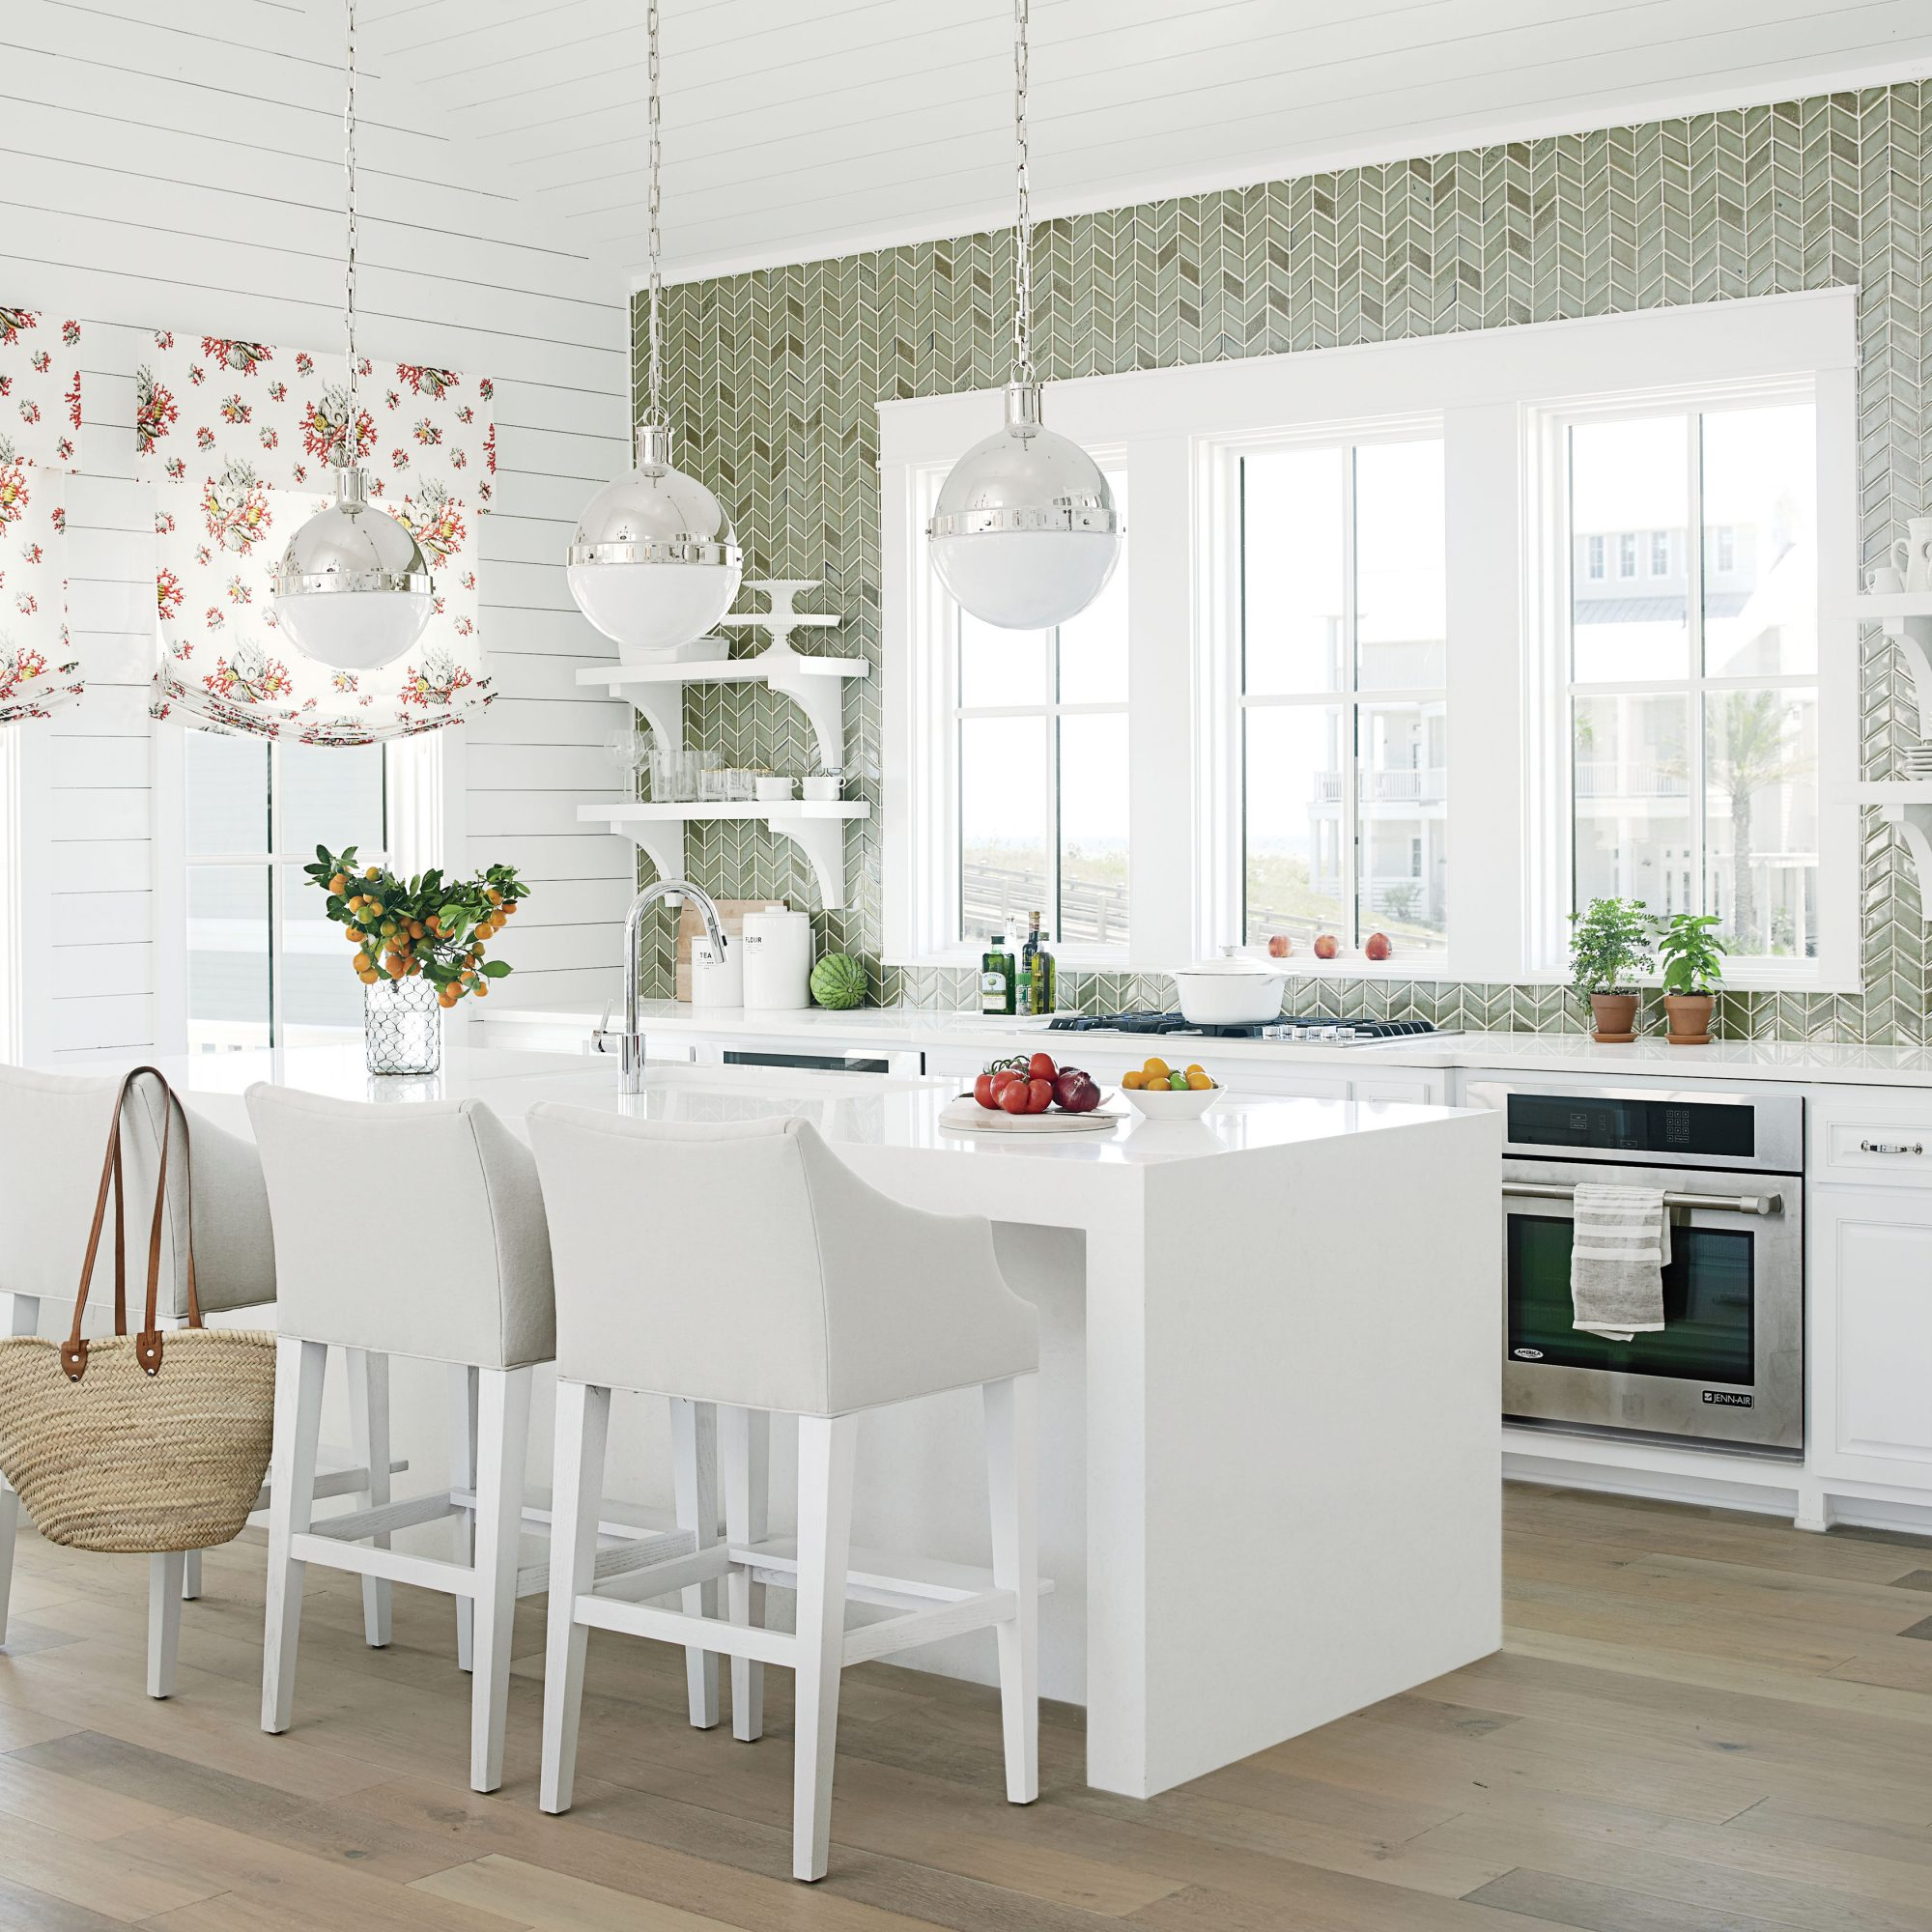 This kitchen reminds us of one of those movies with a star-studded ensemble cast that make it shine start-to-finish. Here, the stars are all manner of smart ideas: olive ceramic tile backsplash climbing all the way to the ceiling, big windows, and more.